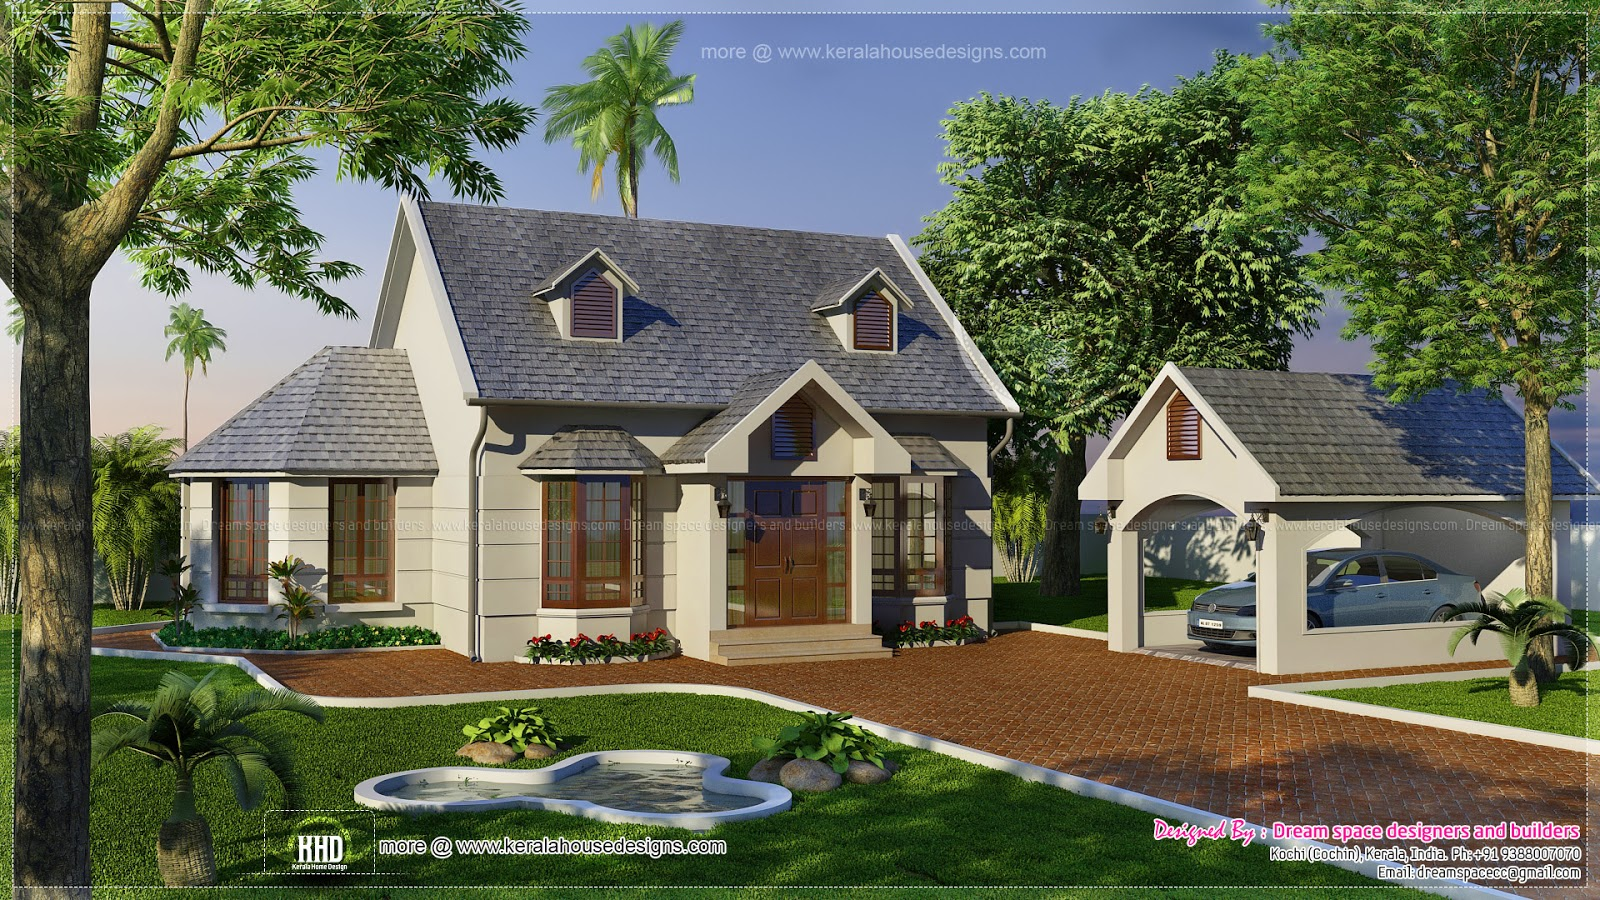 Vacation garden home design in 1200 home kerala for Home and garden